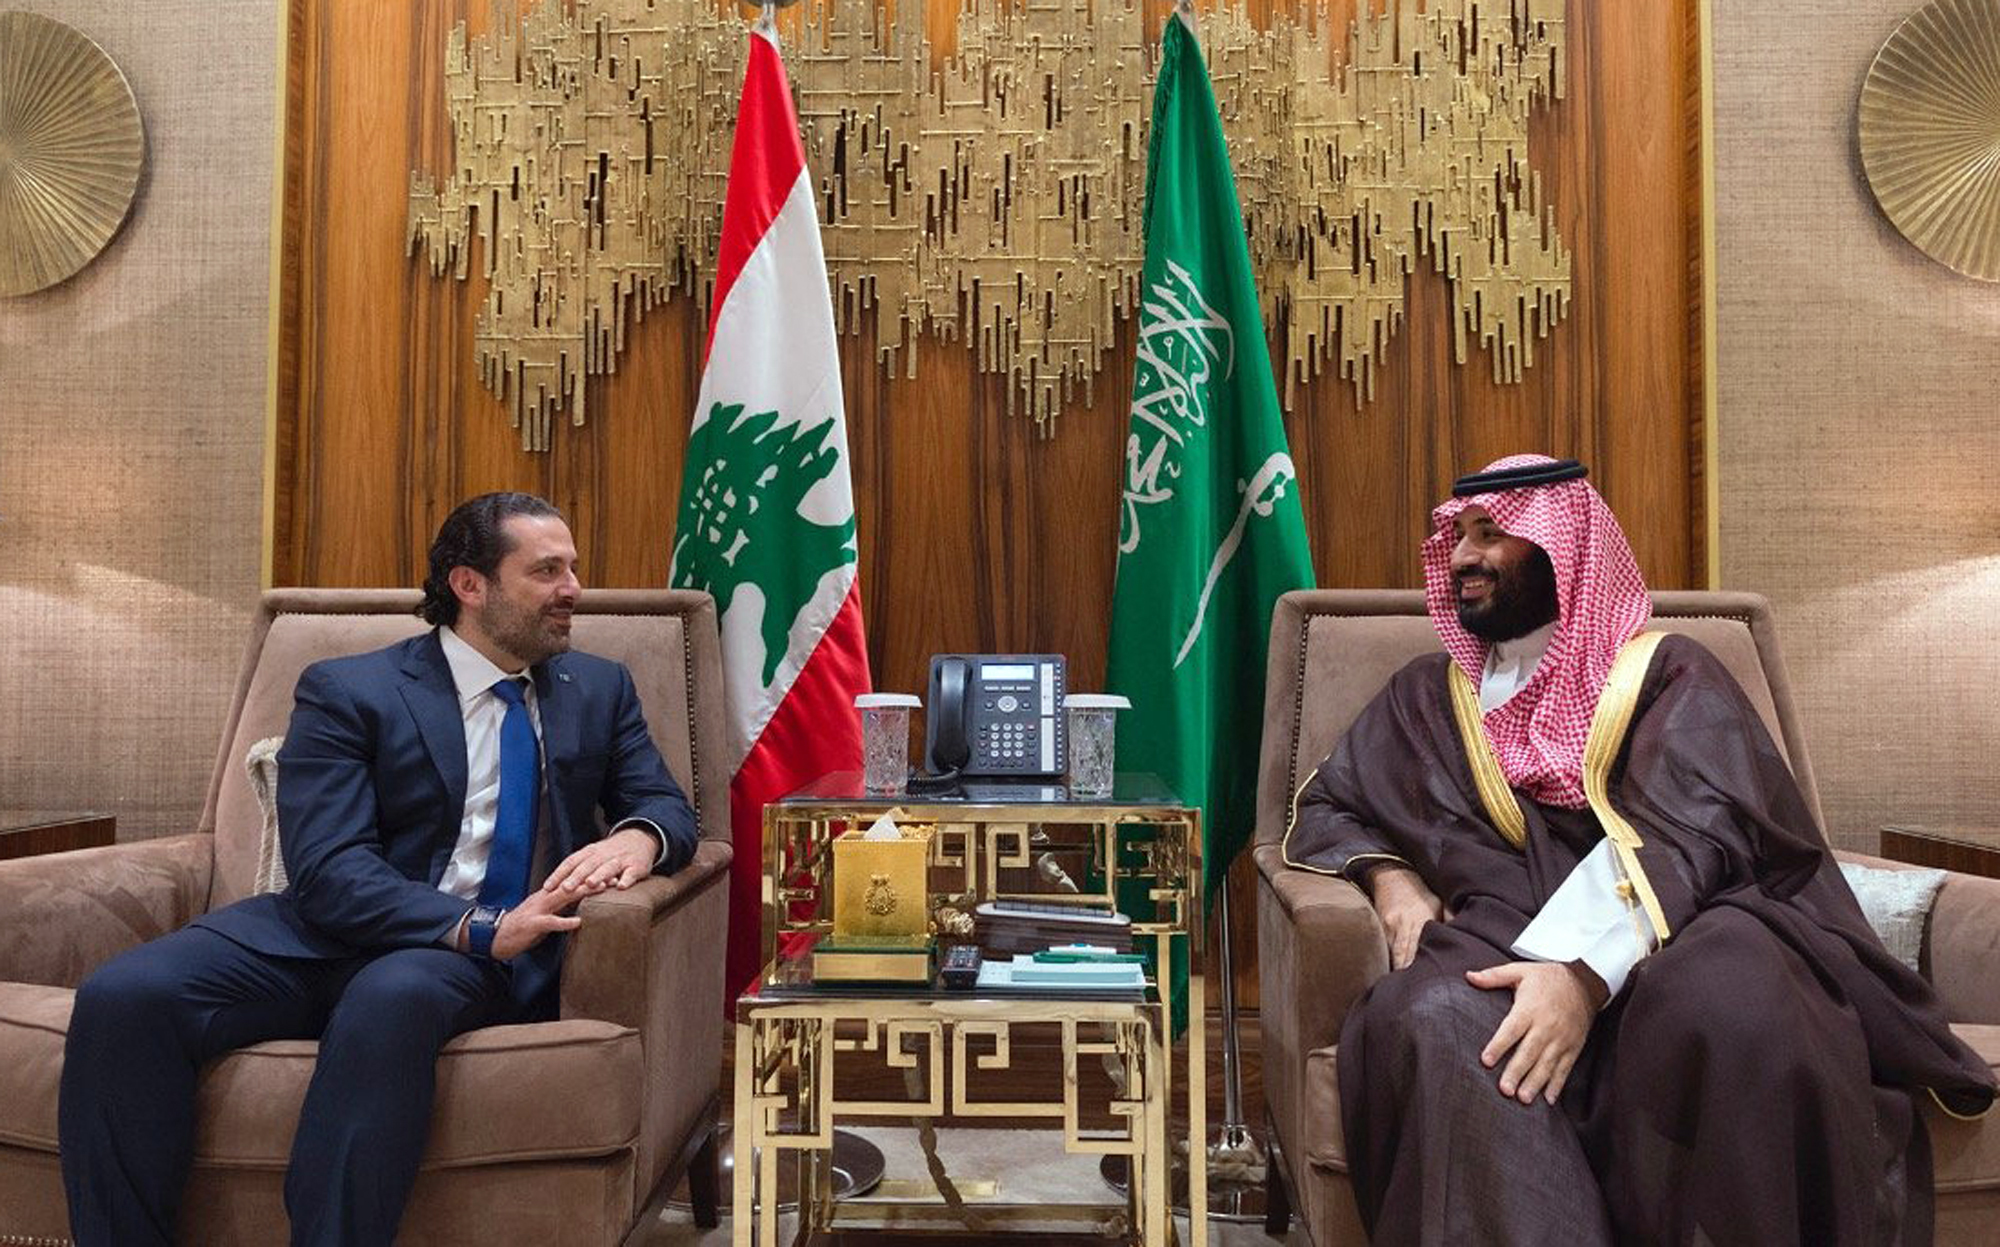 Nasrallah: Saudi Arabia forced Lebanese PM to resign